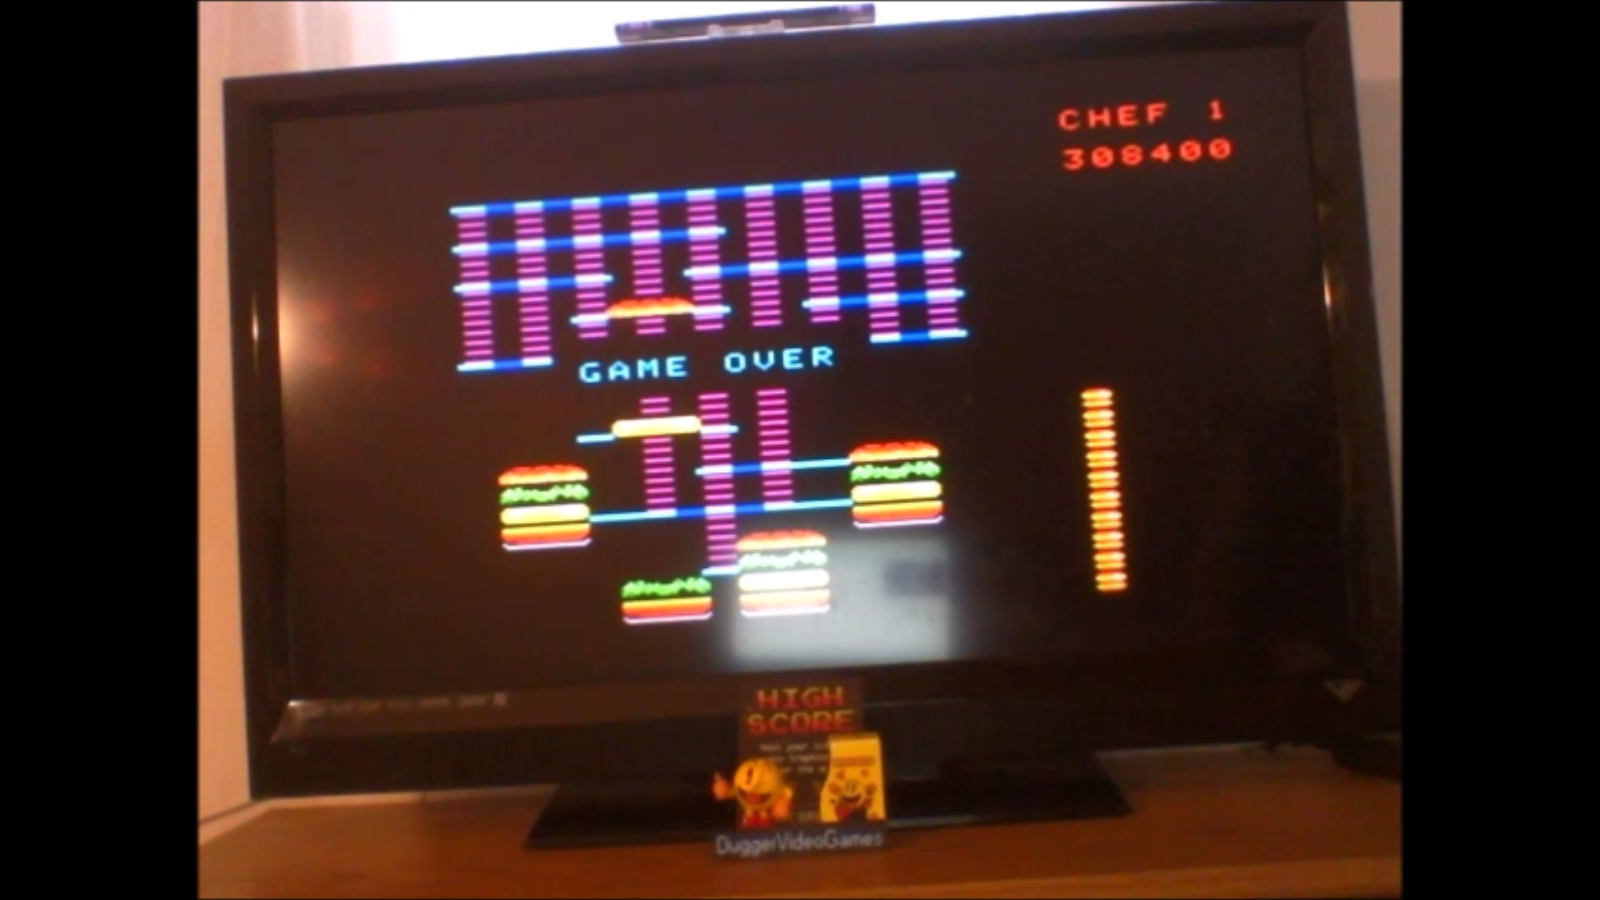 DuggerVideoGames: BurgerTime: Skill 4 (Colecovision Emulated) 308,400 points on 2017-01-26 16:05:34